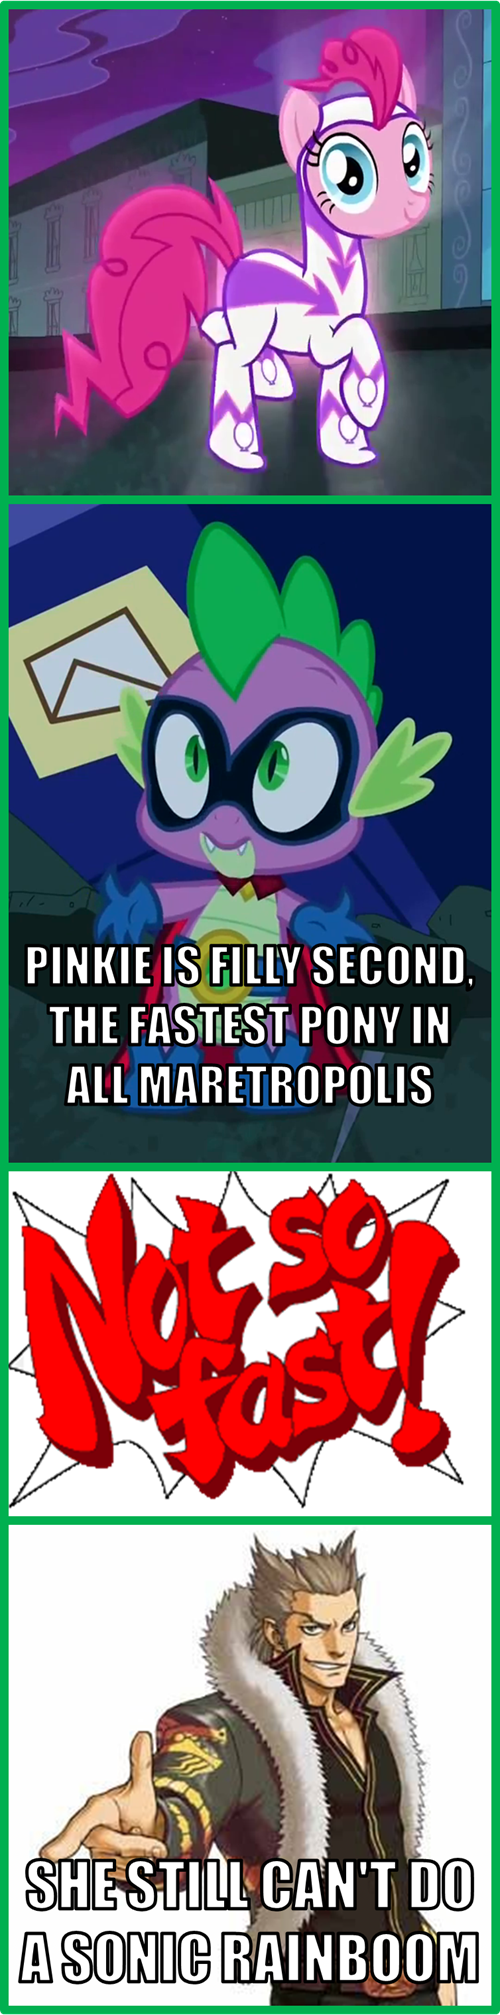 pinkie pie,rainbow dash,sonic rainboom,power ponies